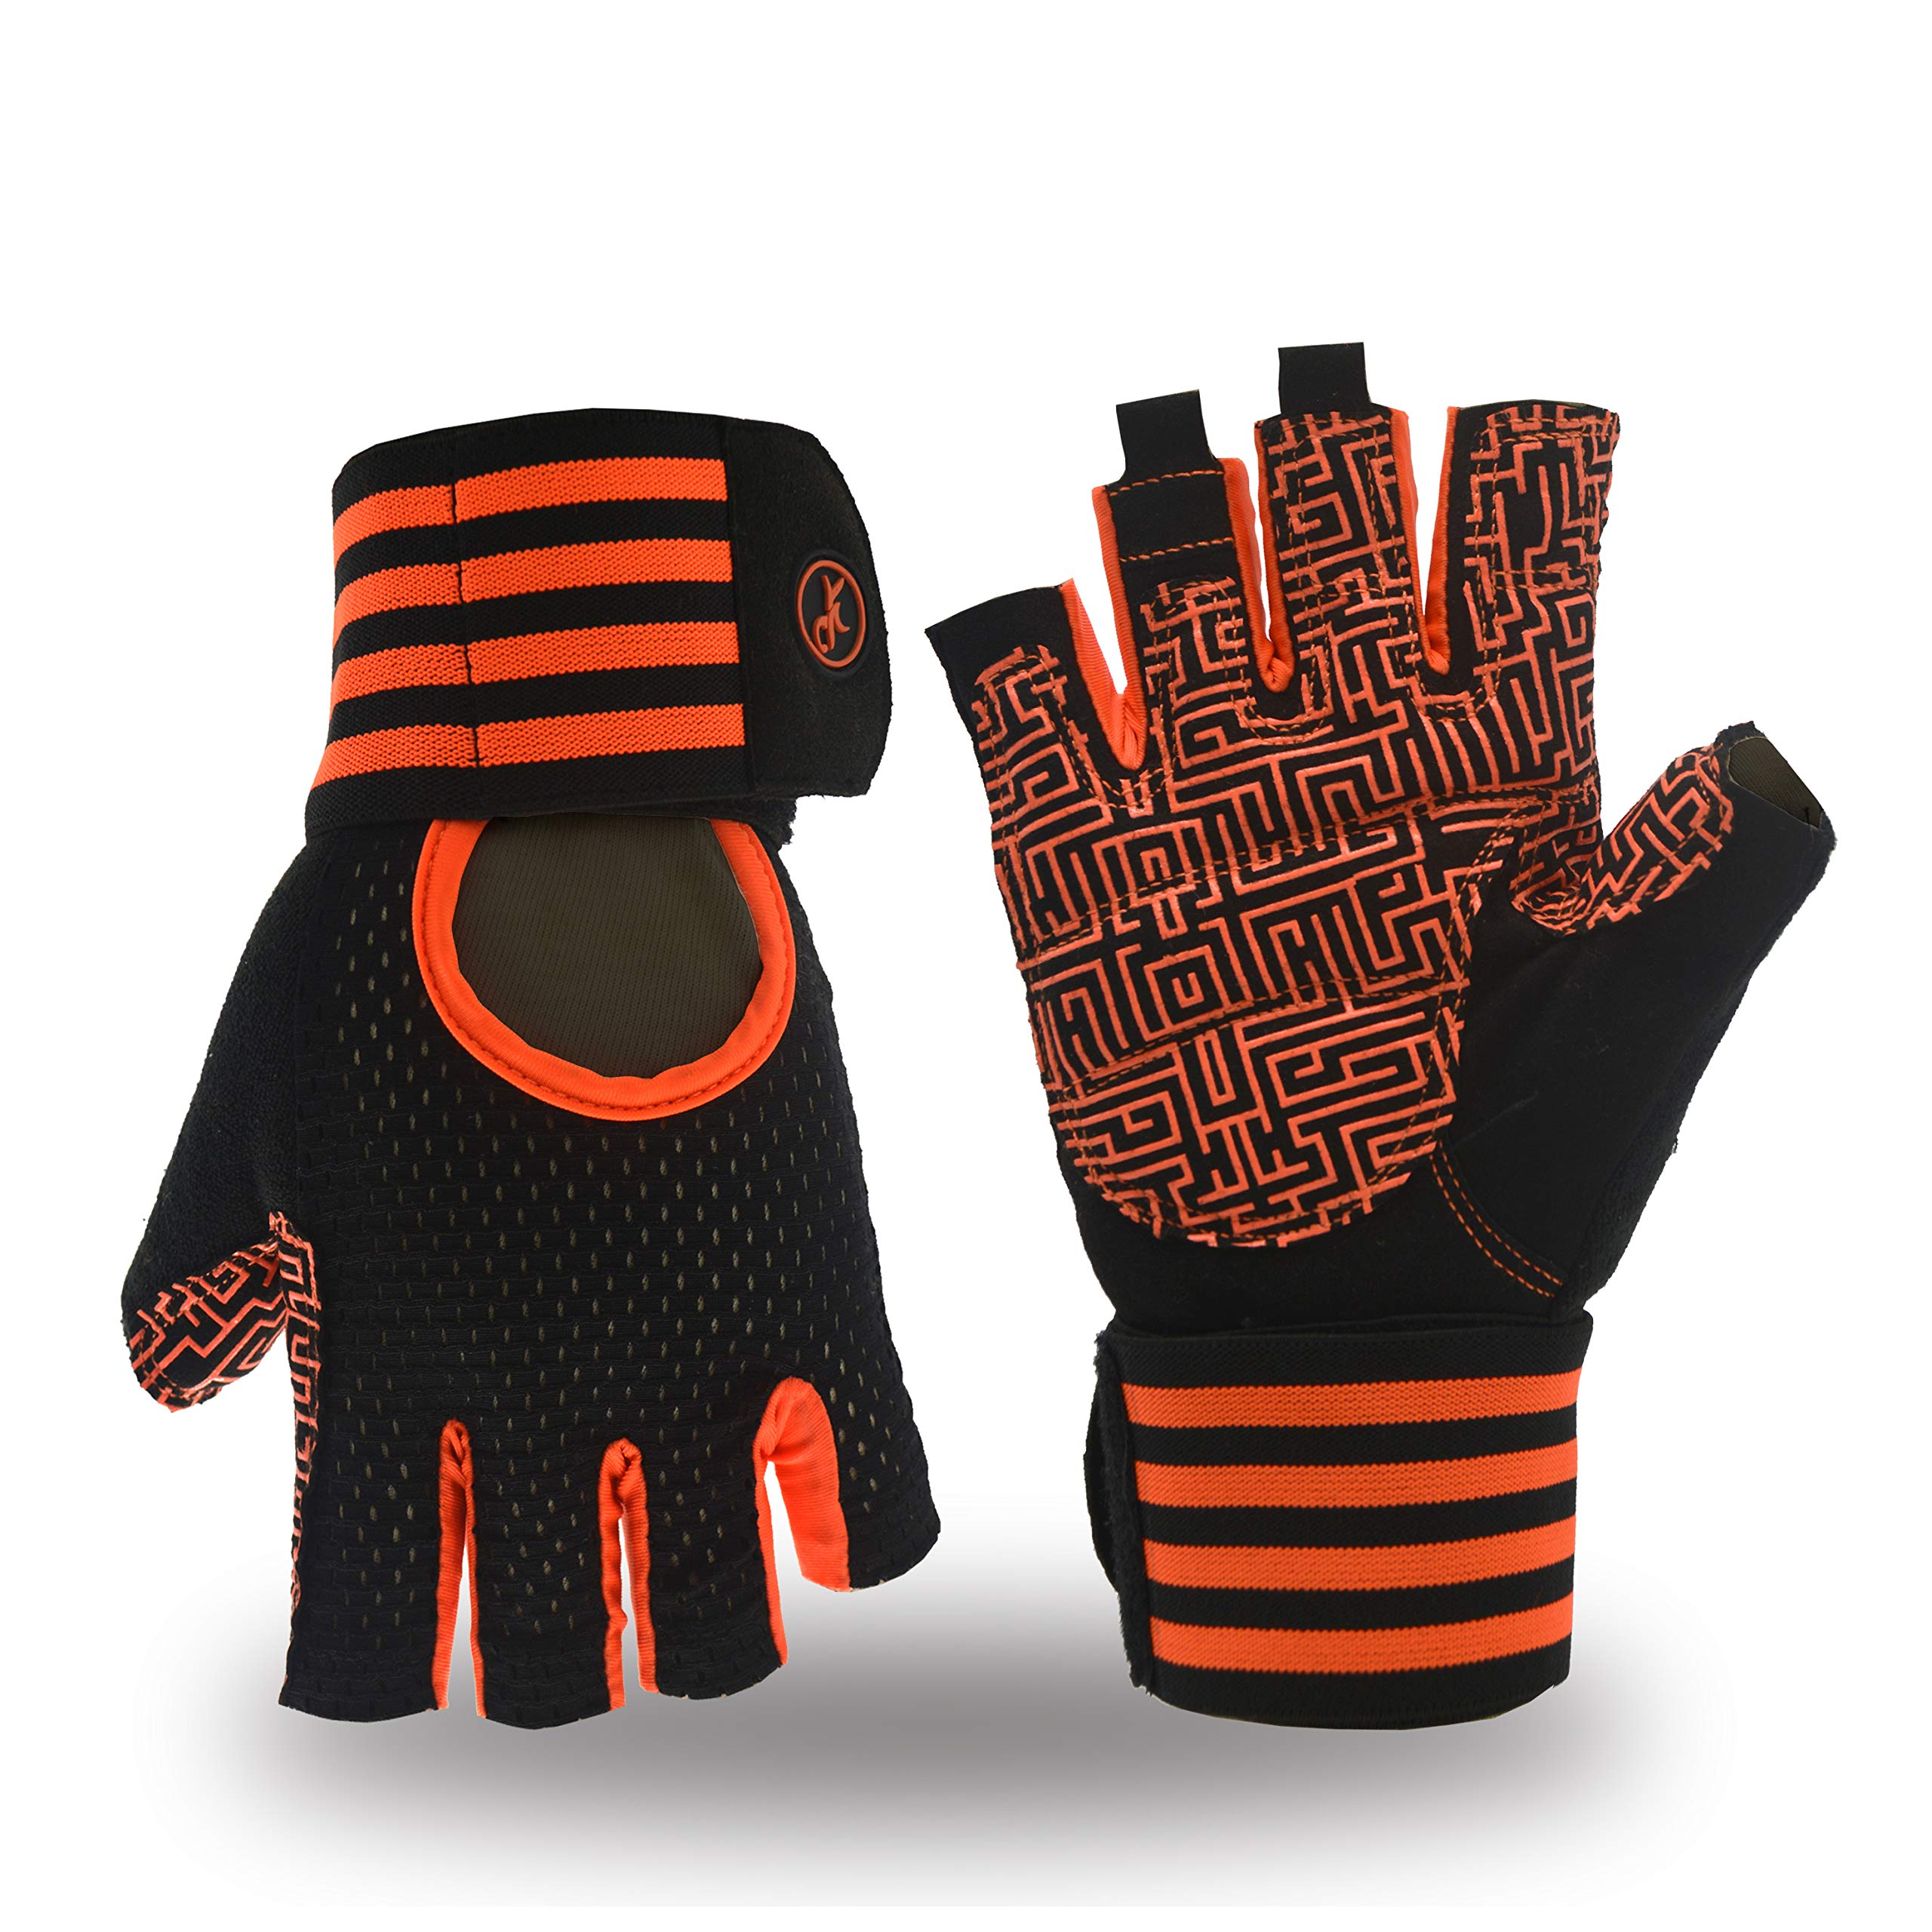 Mava Crossfit Gloves: Mava Sports Leather Padding Gloves Cross Training Gloves